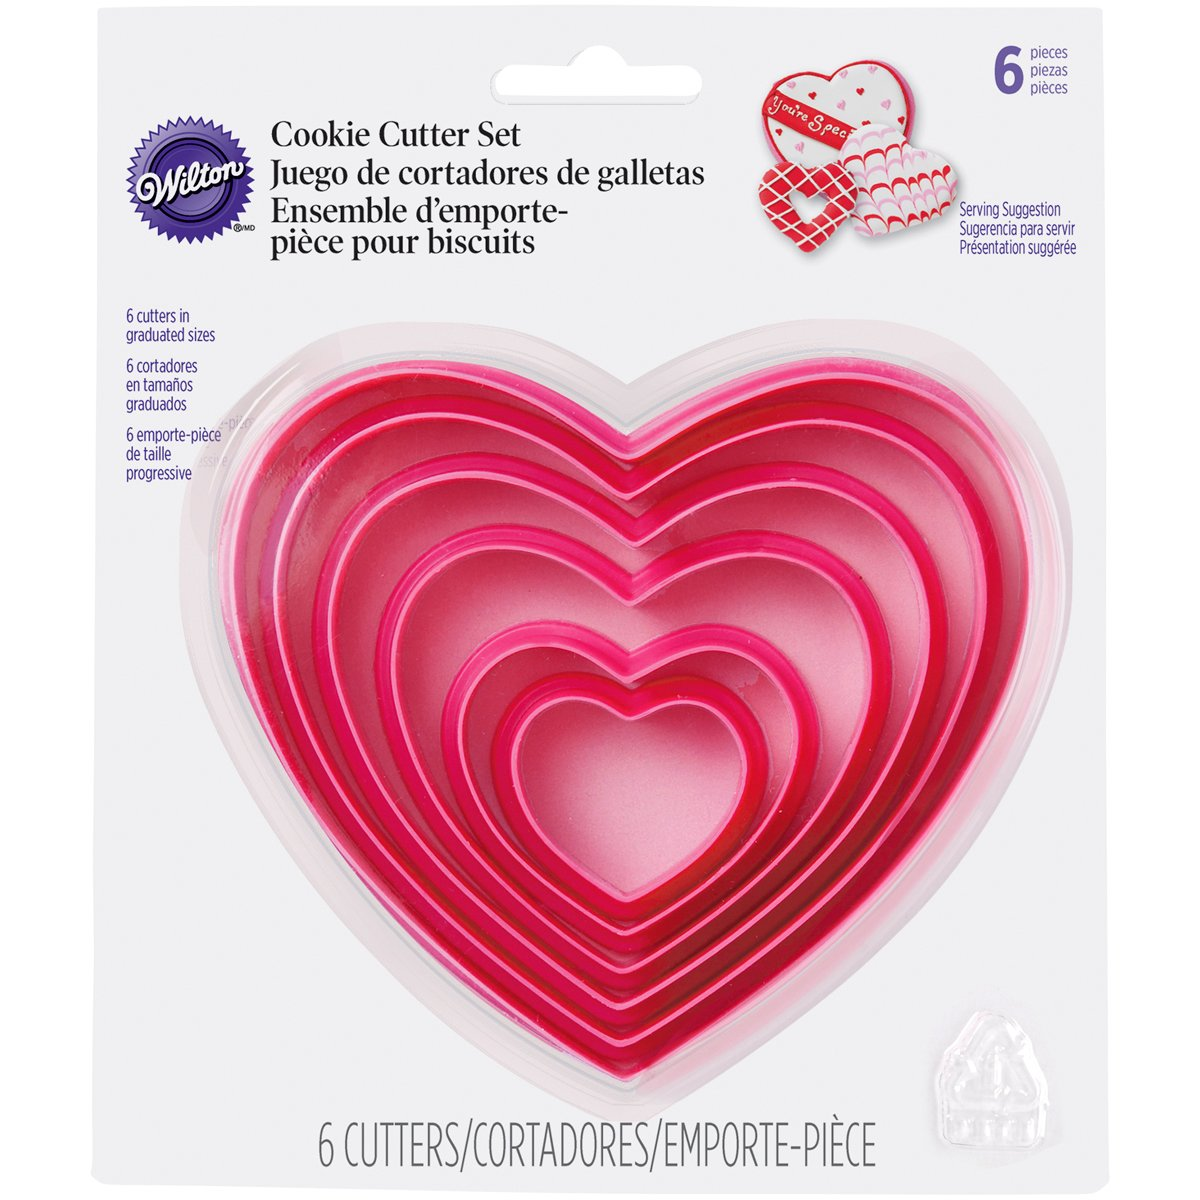 Nesting heart shaped cookie cutters from Wilton.